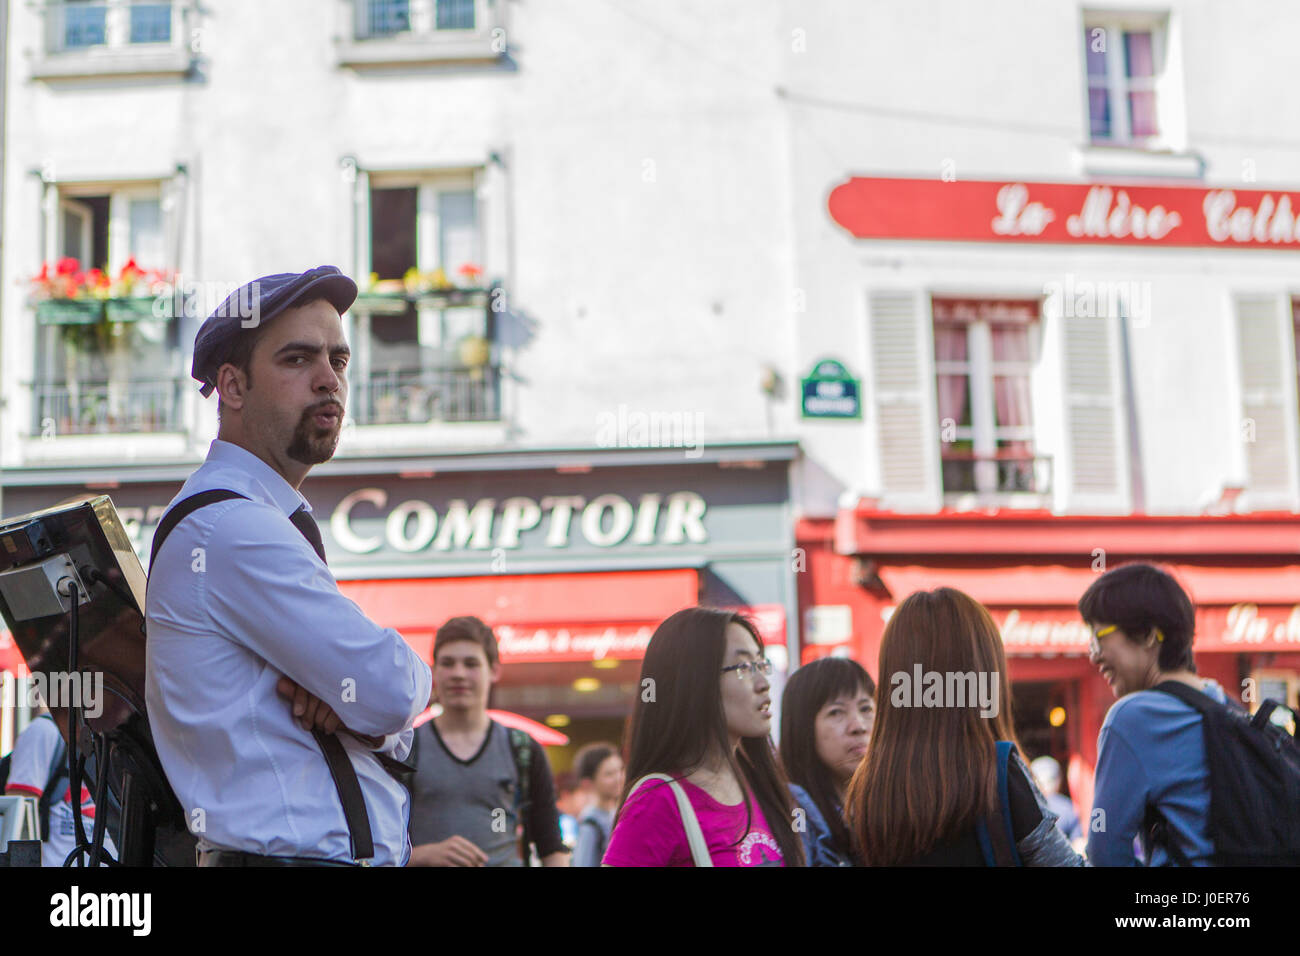 A waiter whistles as he takes a break from serving tourists at a cafe in the Montmartre neighborhood of Paris, France. - Stock Image